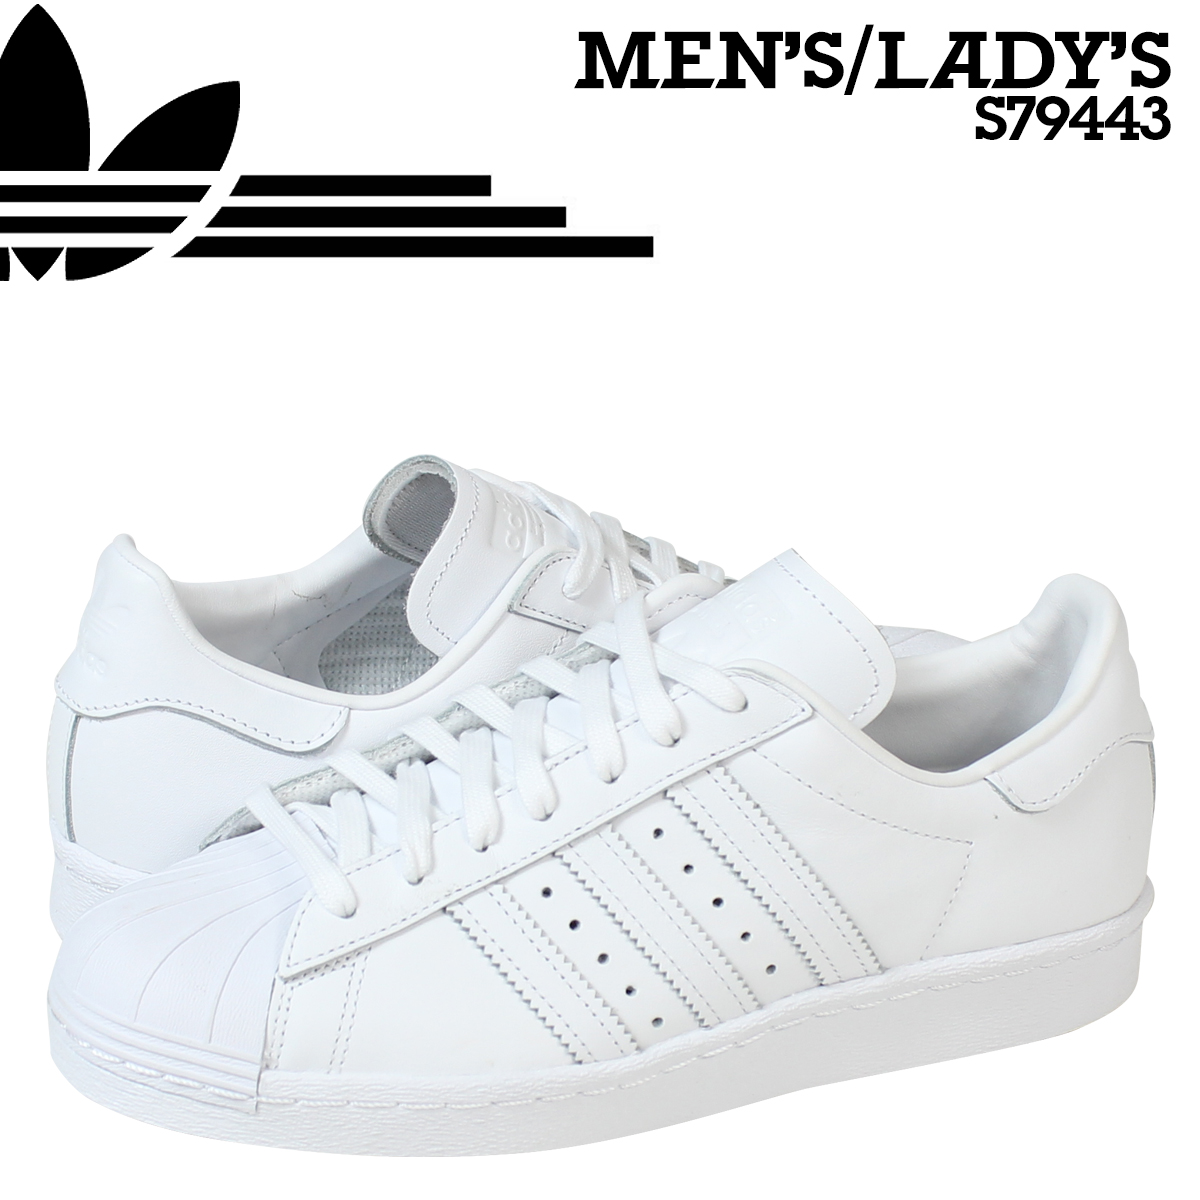 2ff6d4581 ALLSPORTS  Adidas originals adidas Originals superstar sneakers SUPERSTAR  80 s S79443 men s women s shoes white  8 5 Add in stock